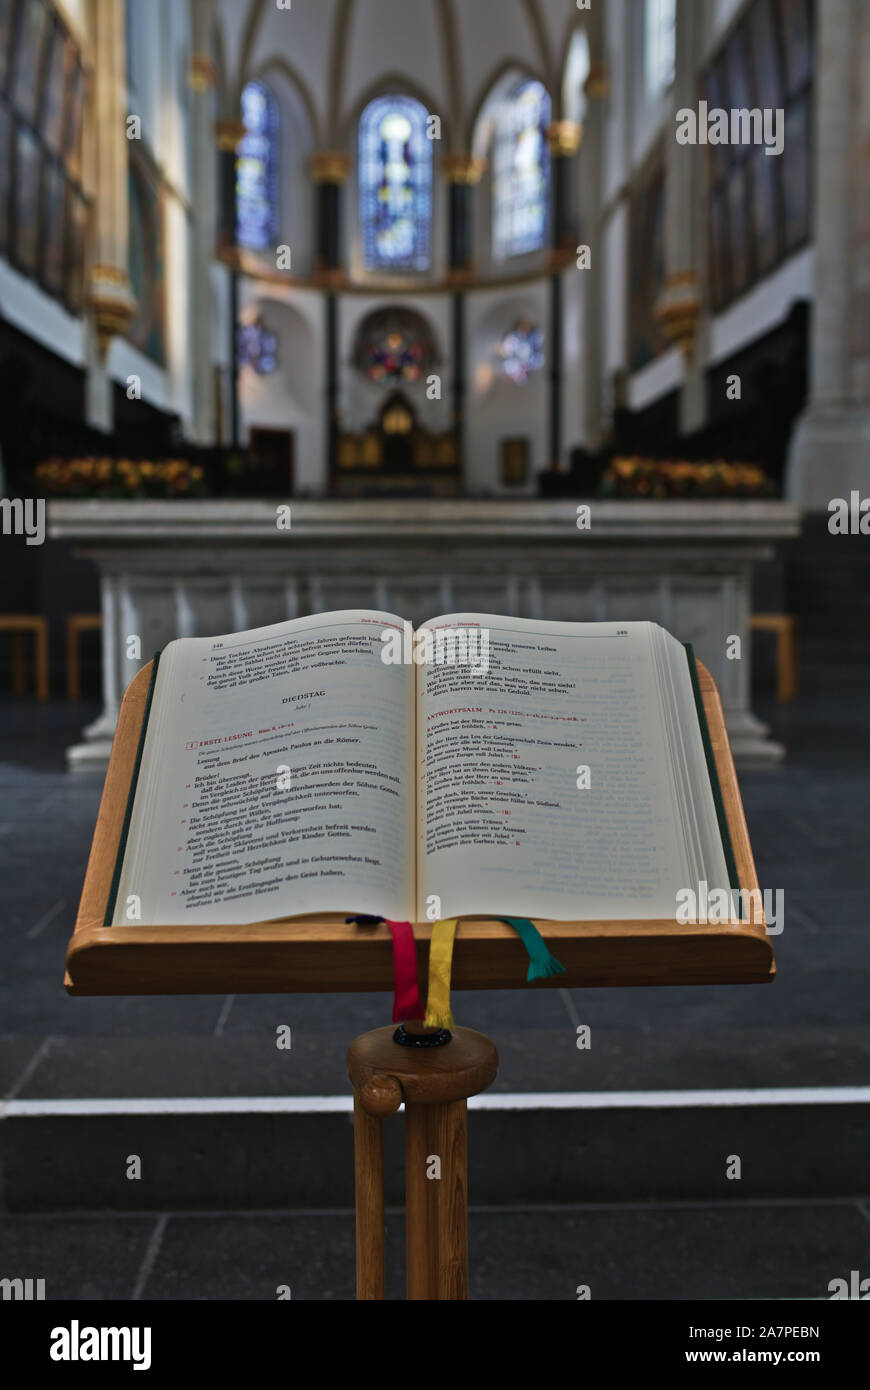 book-page-of-the-day-in-front-of-altar-in-church-2A7PEBN.jpg